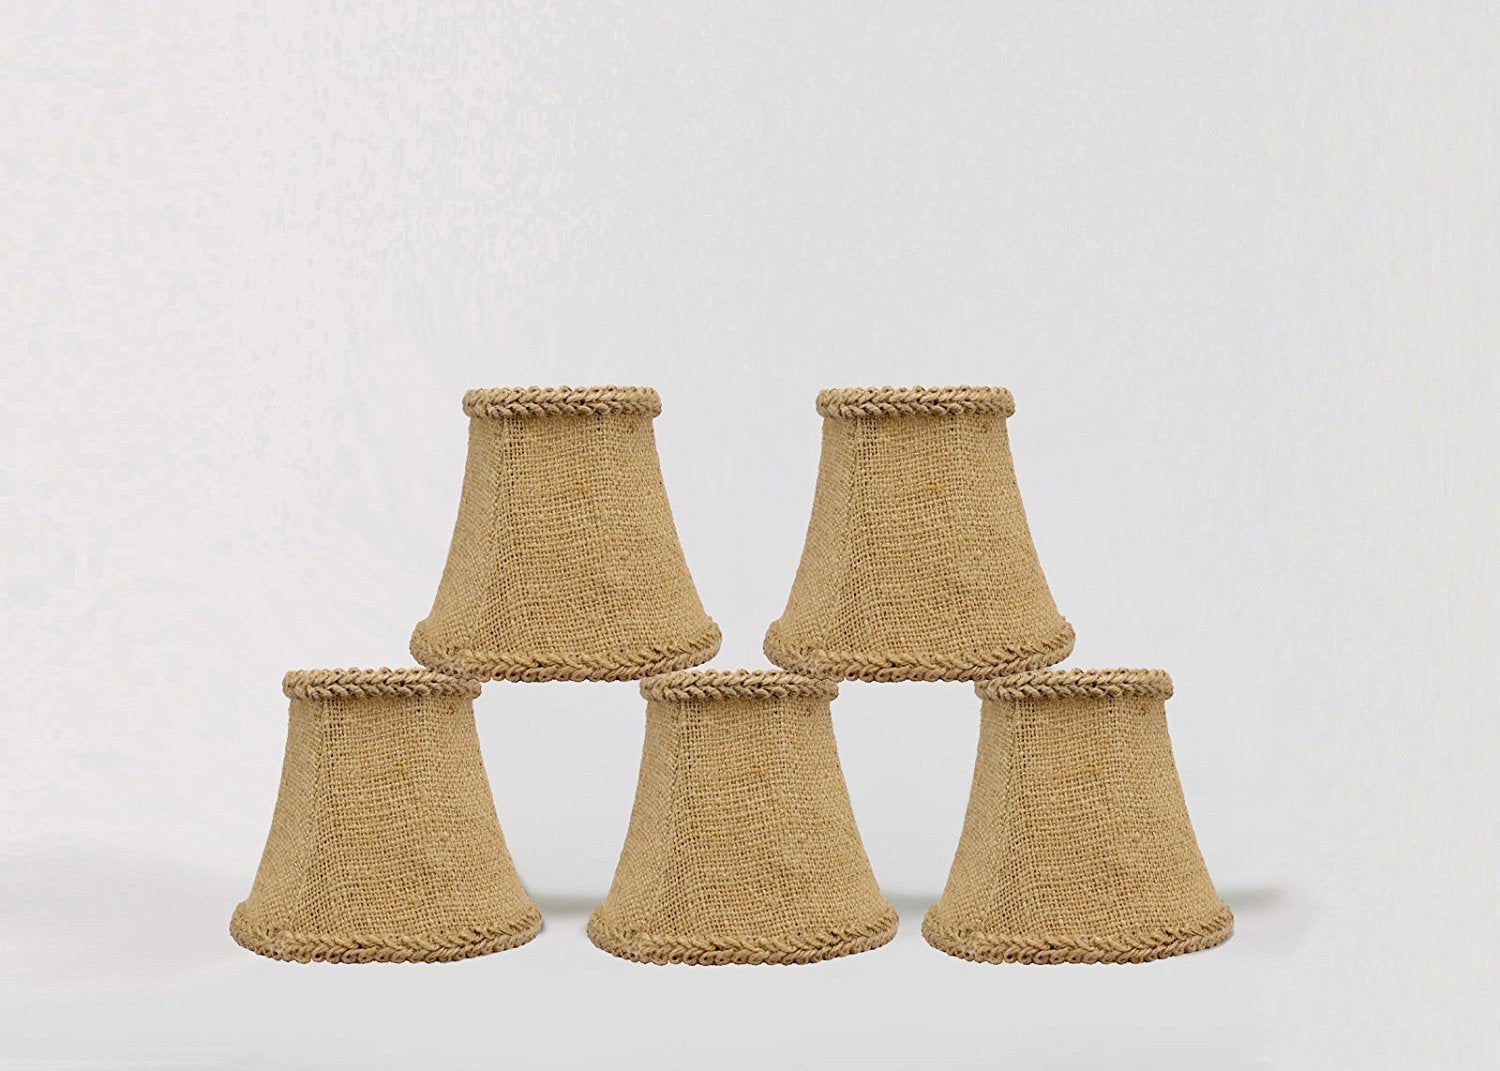 Burlap 5 inch chandelier mini lamp shade with braided trim urbanest burlap 5 inch chandelier mini lamp shade with braided trim arubaitofo Choice Image